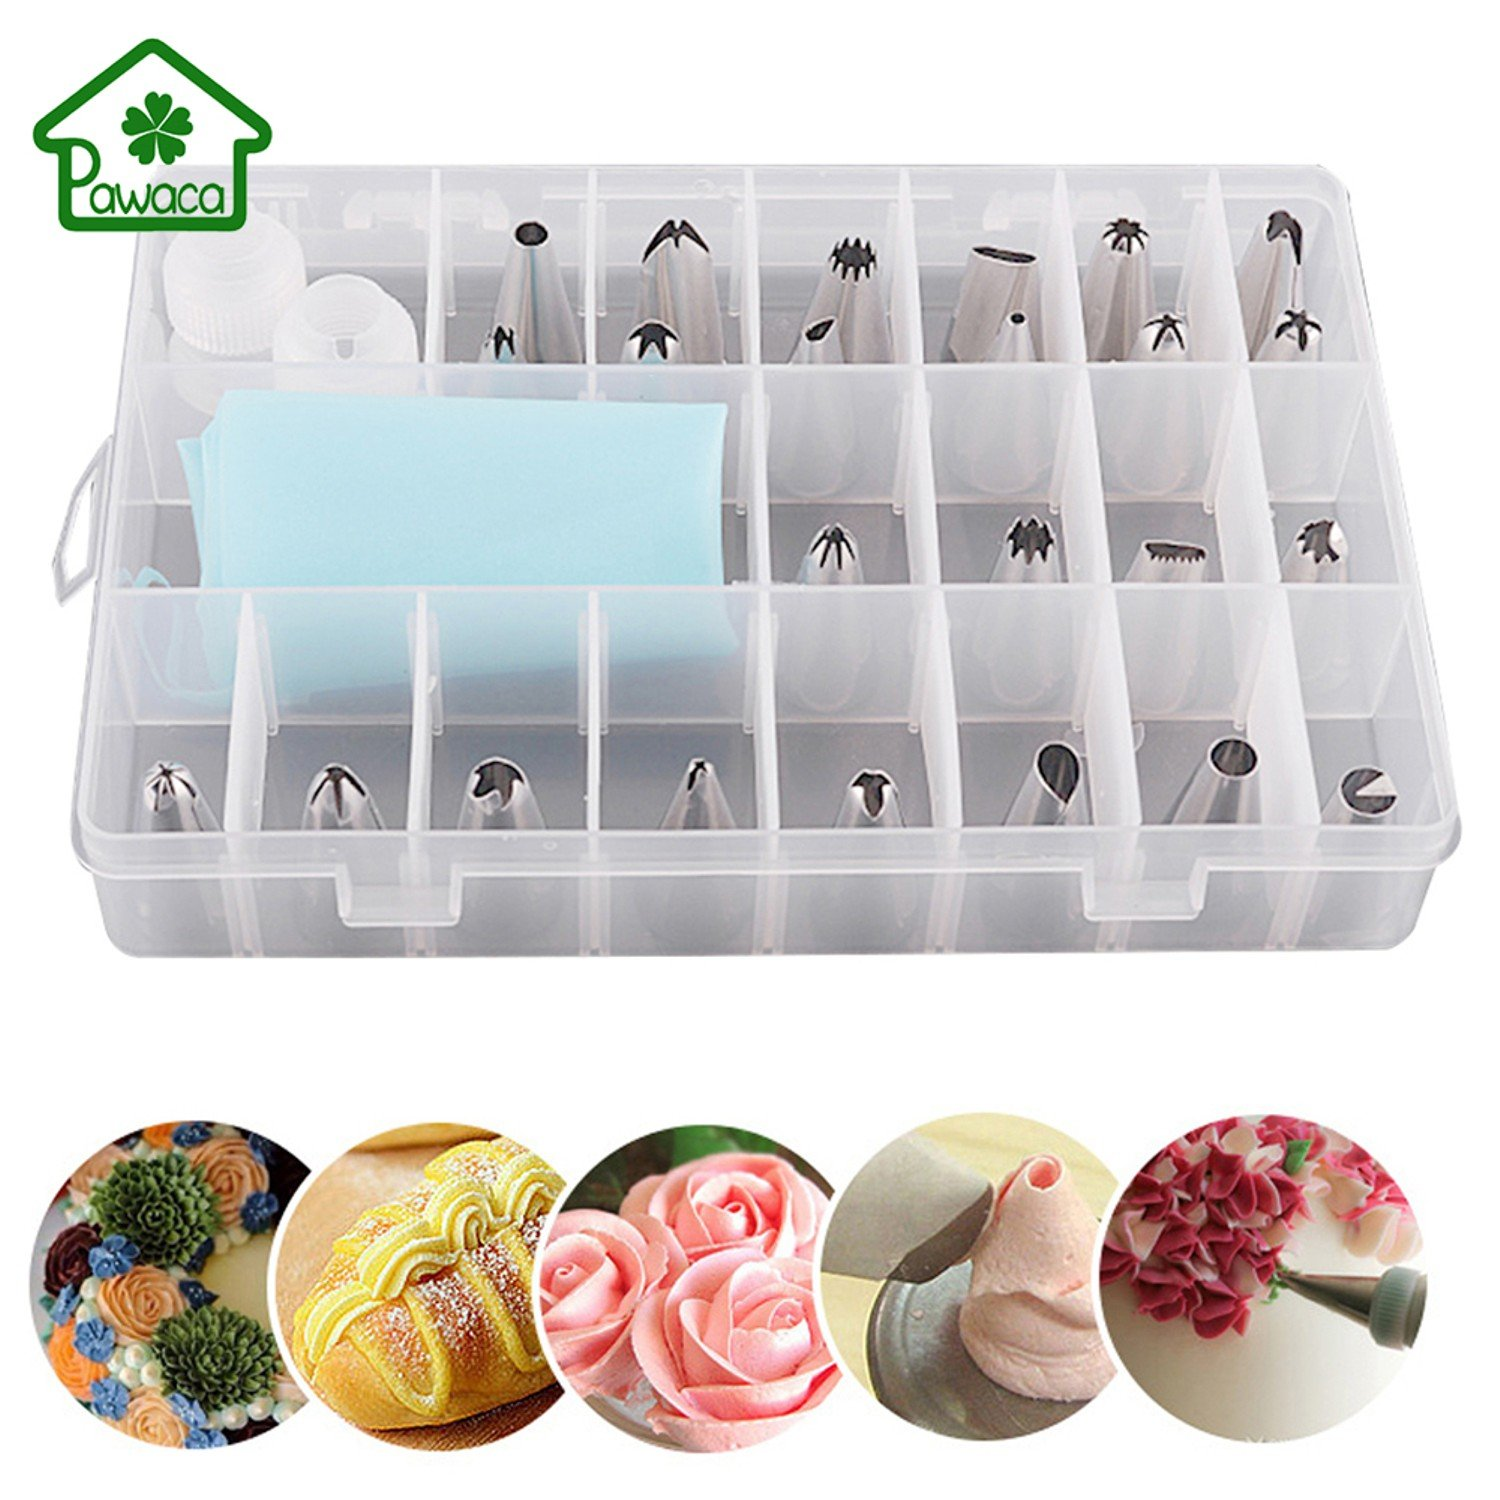 27Pcs/Set Convenient Durable Dessert Decorators Silicone Icing Piping Cream Pastry Bag + 24 Stainless Steel Nozzle Set Cake Decorating Tips